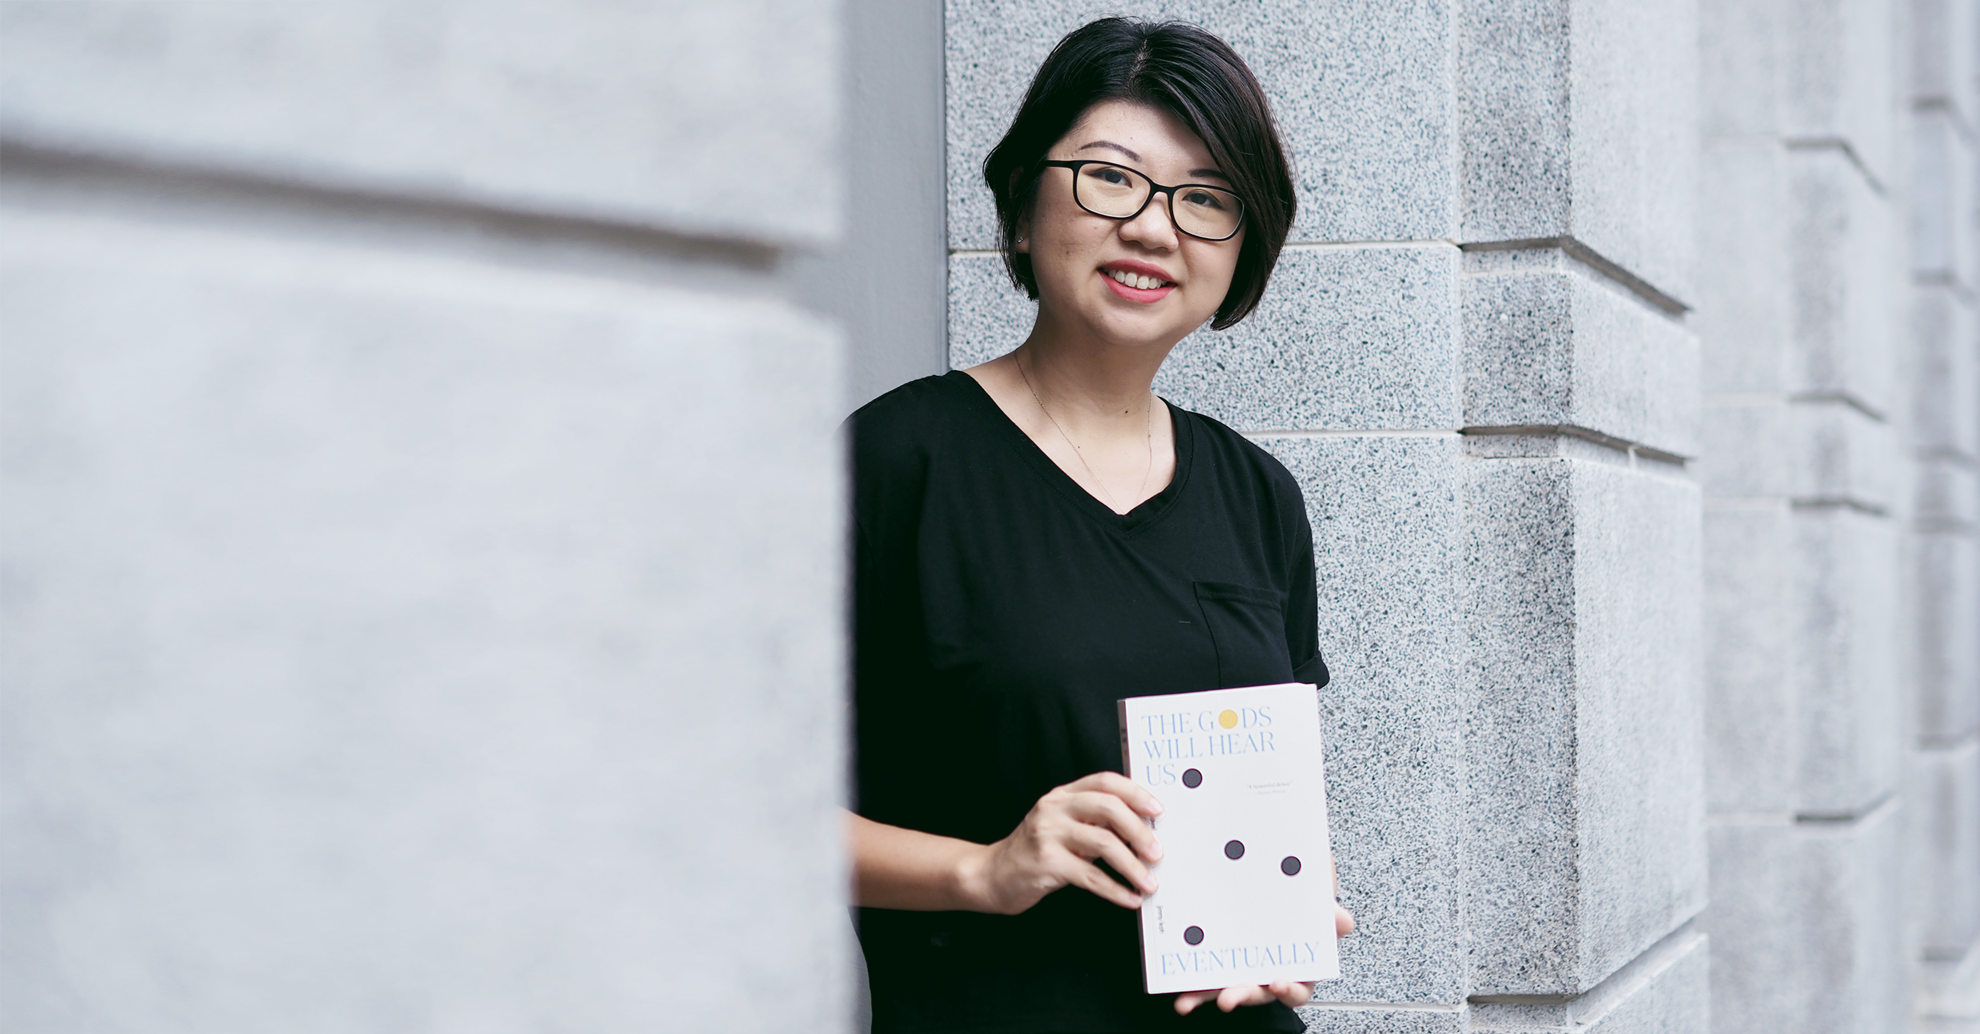 Author Jinny Koh holding a copy of her debut novel, The Gods Will Hear Us Eventually